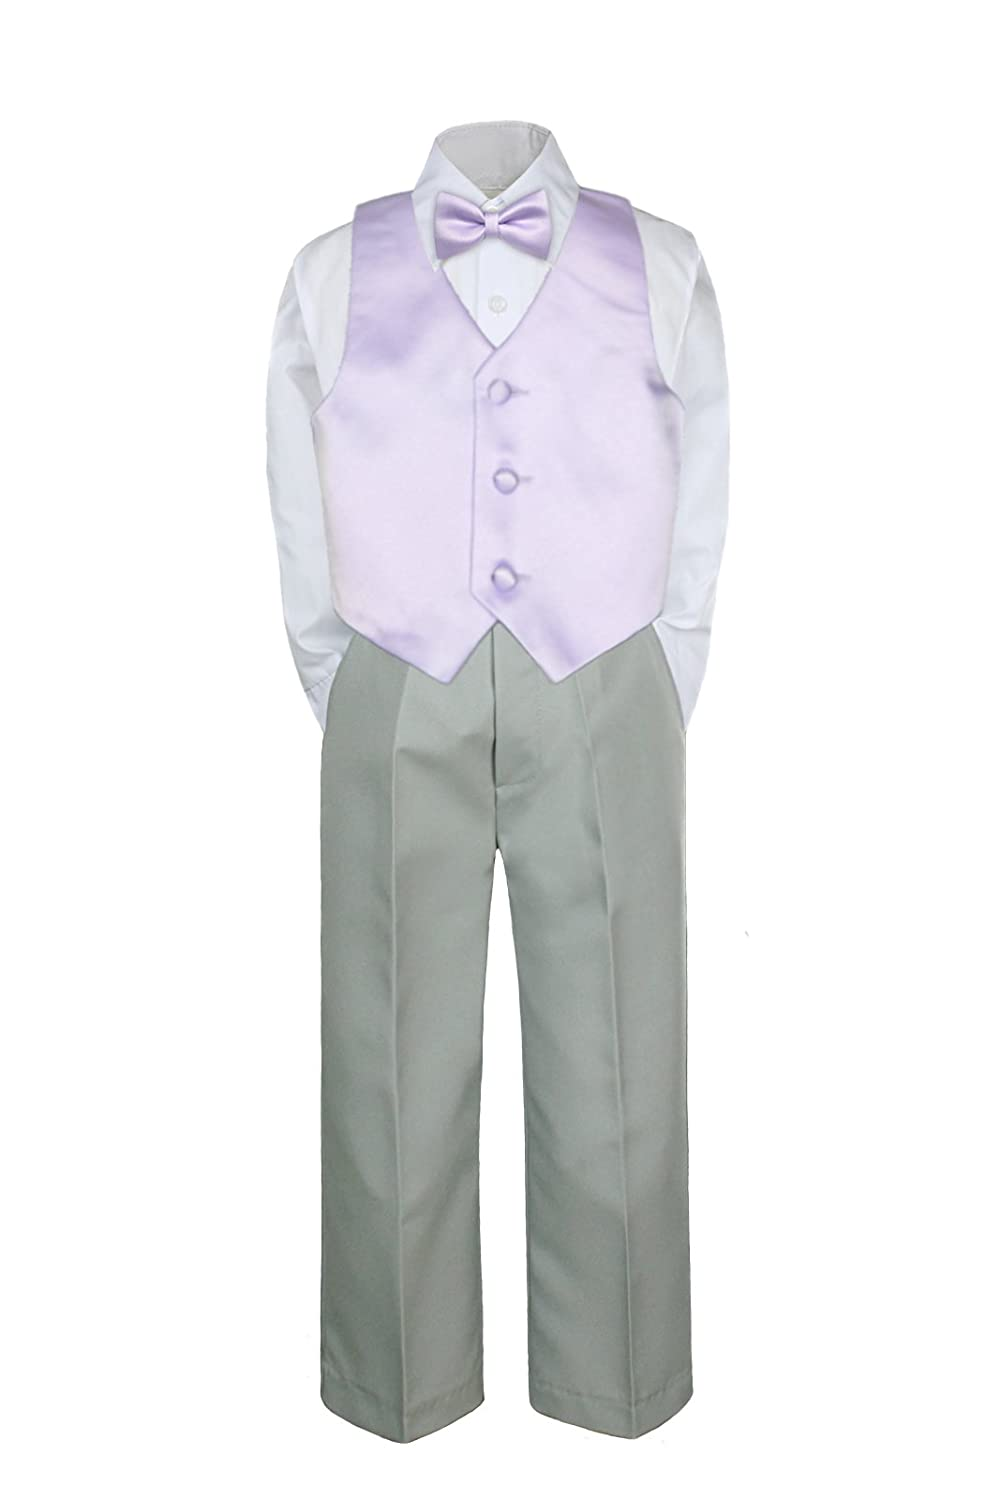 4pc Formal Baby Toddler Boys 4 years warranty Lilac Sui Silver Tie Bow Vest Pants Popular products